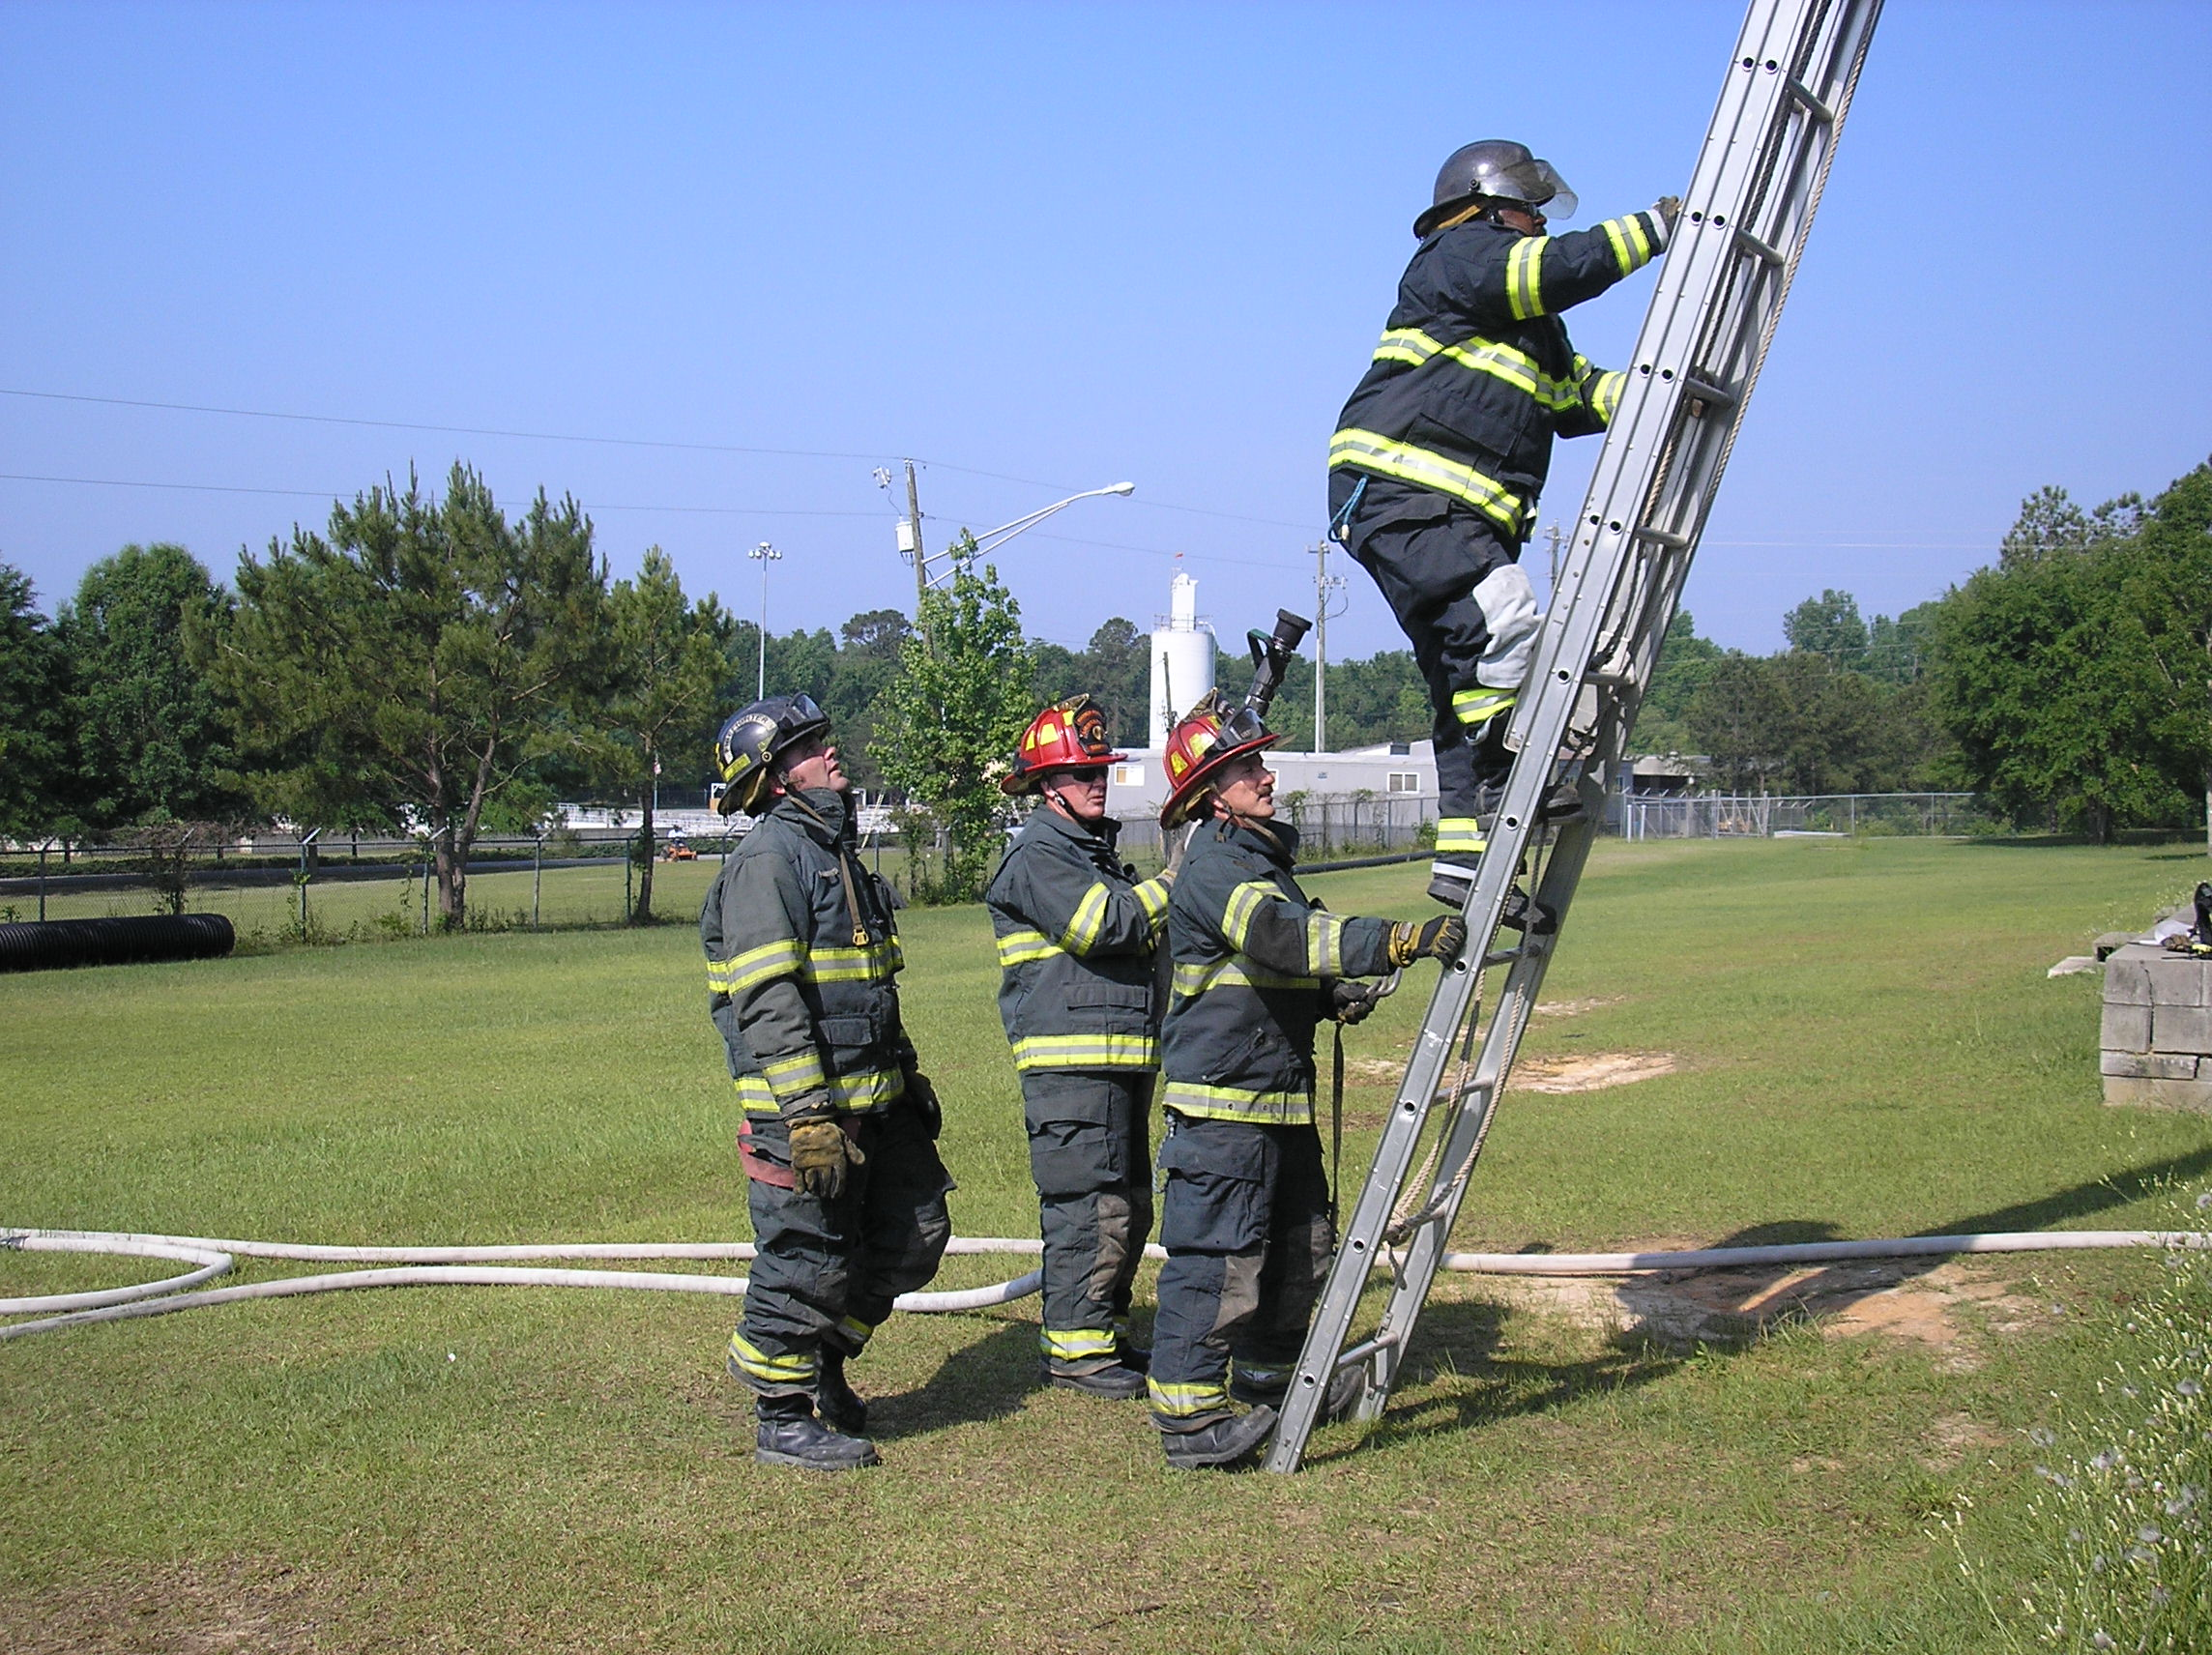 Fire Fighters on a Ladder